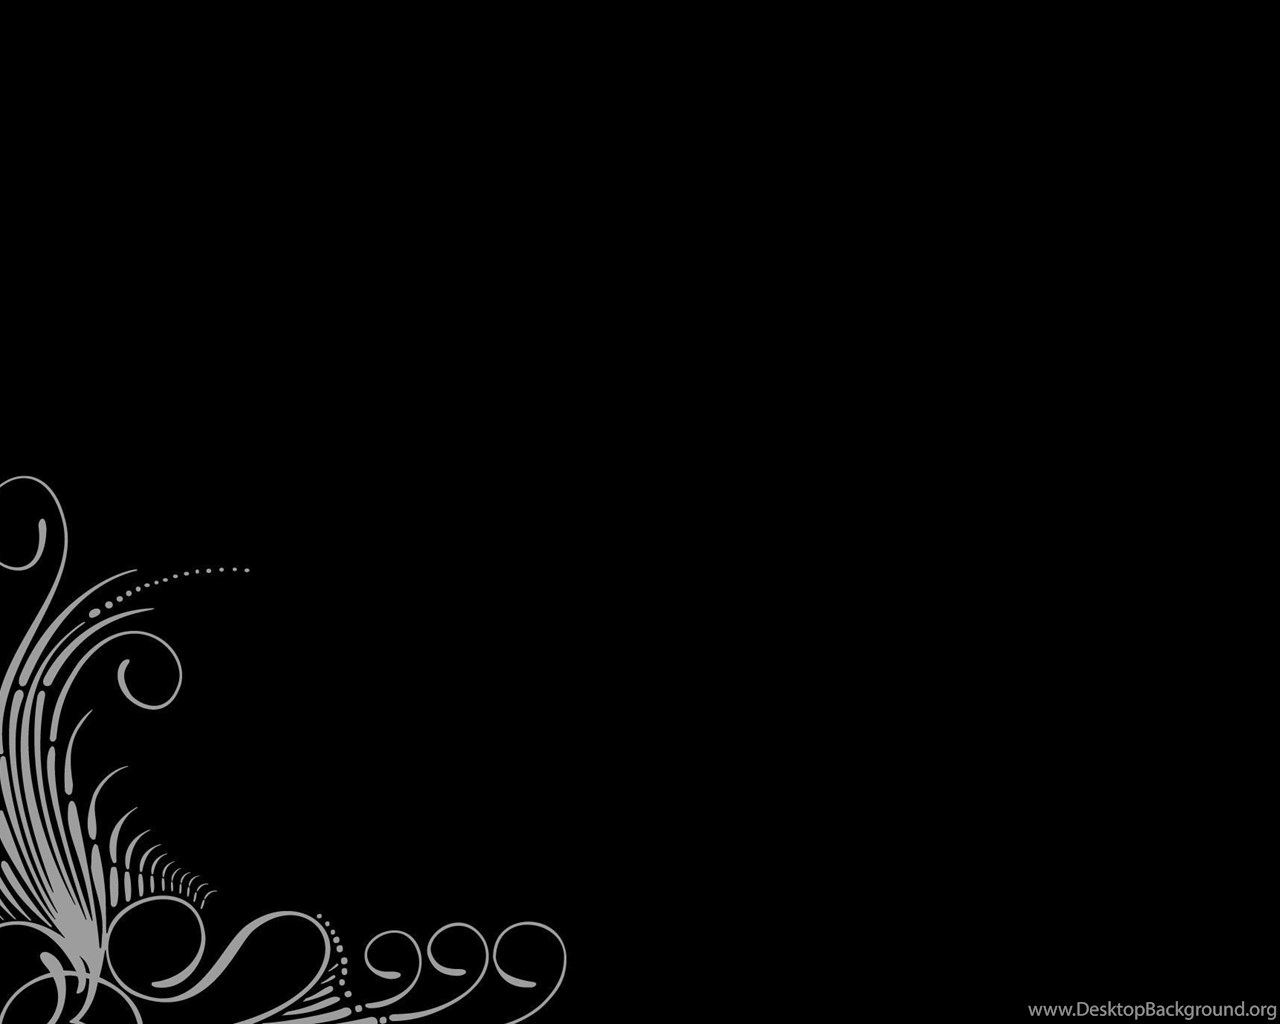 Plain Black Wallpapers Border 18 Backgrounds